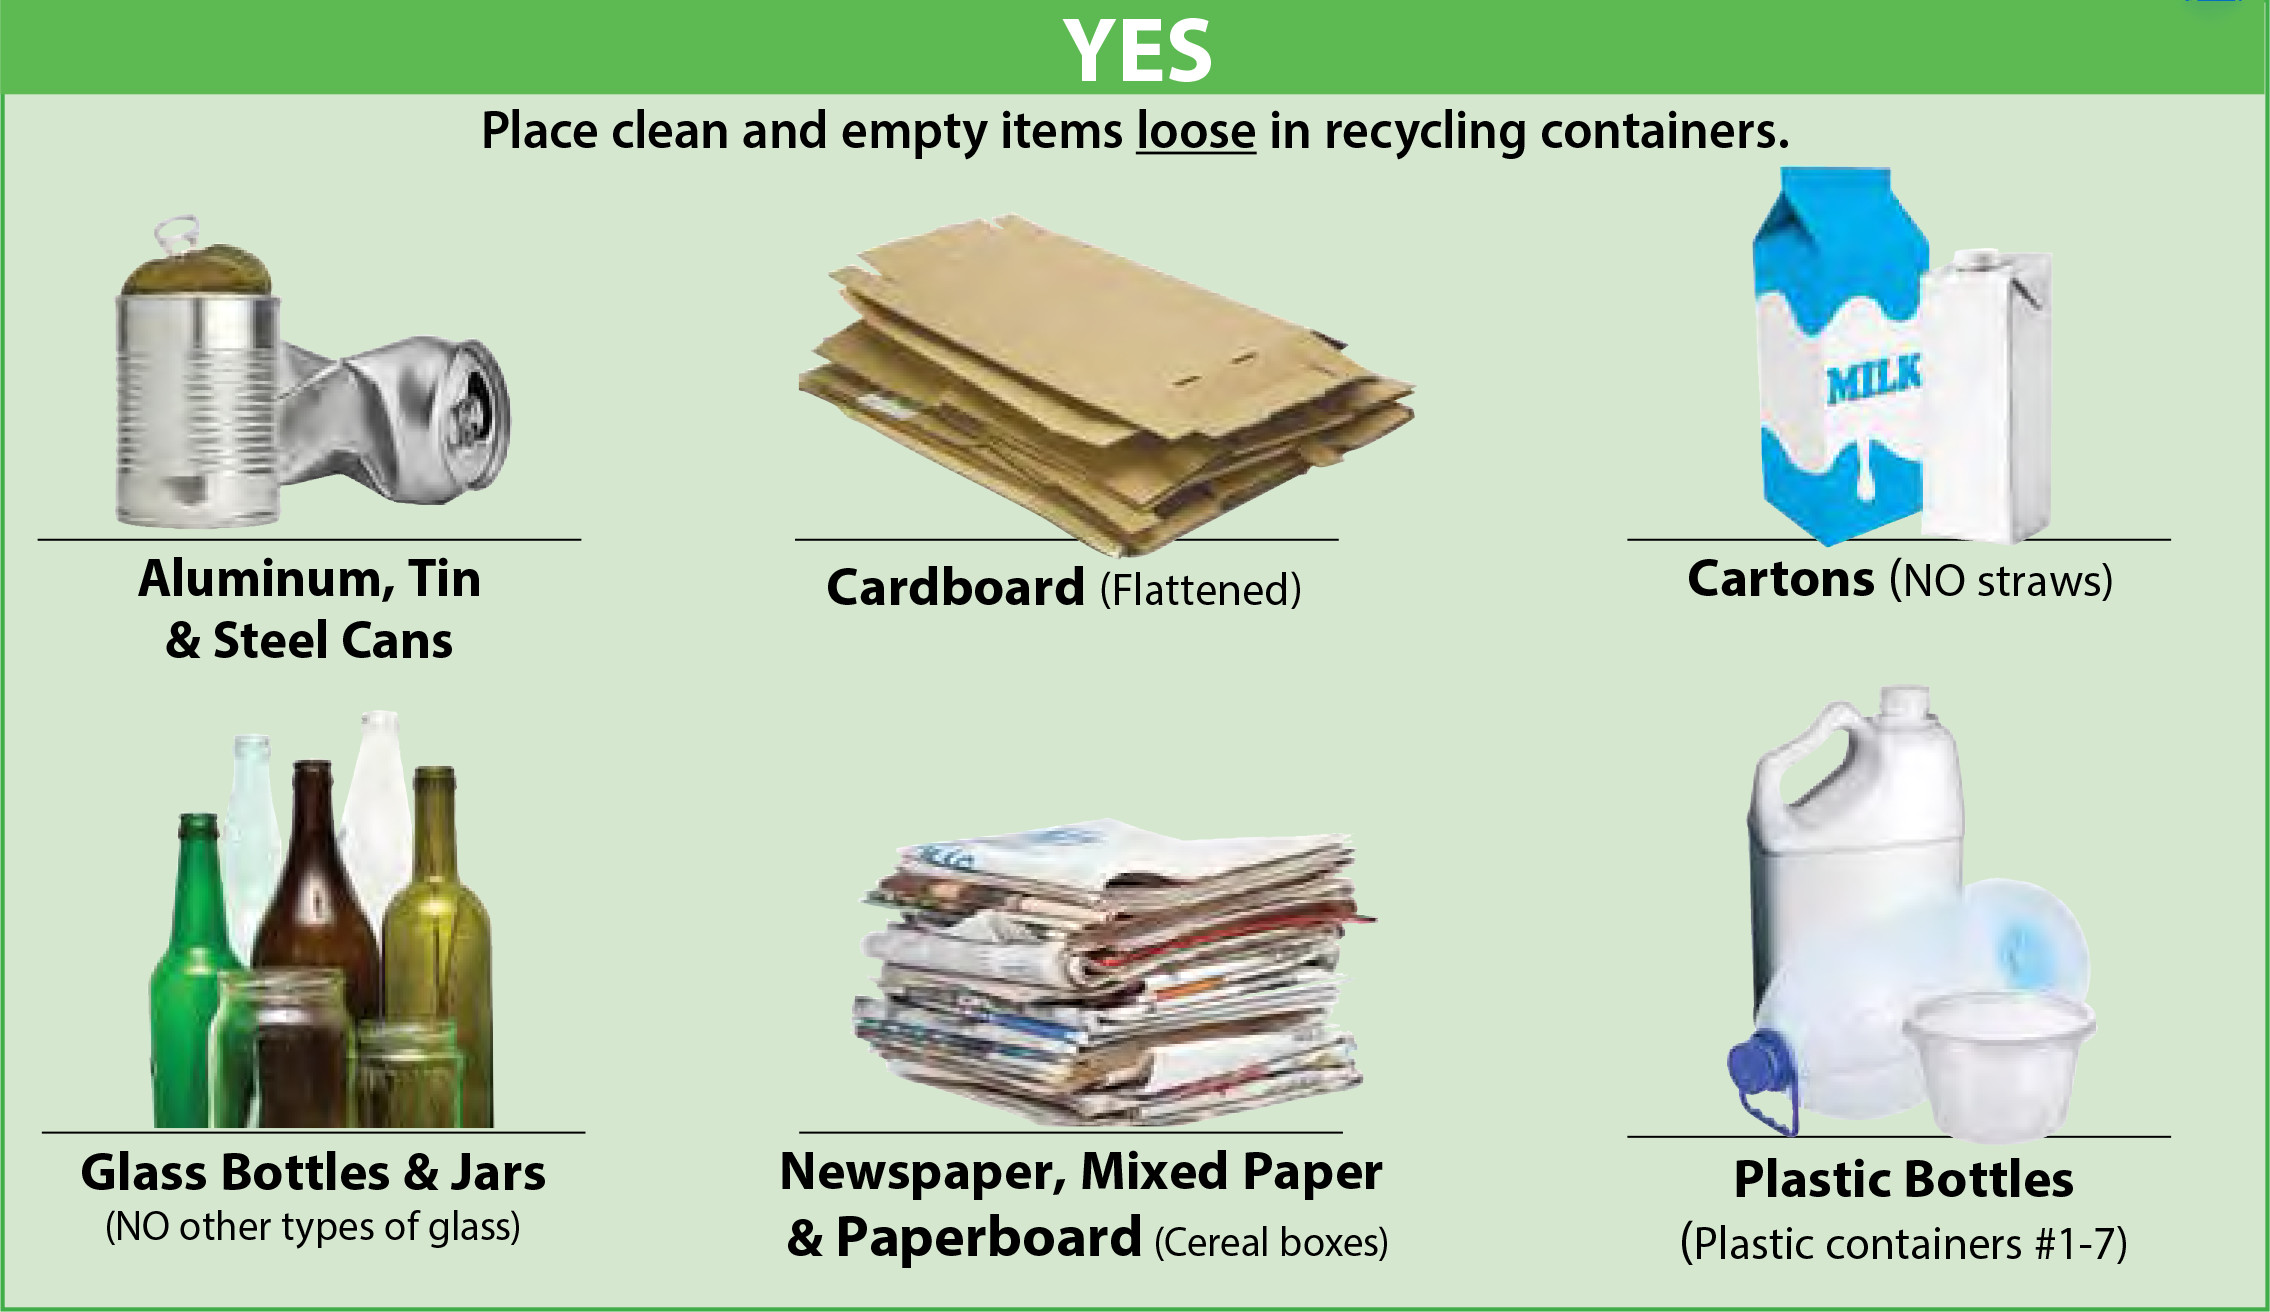 Items that you can recycle are: Aluminum, Tin & Steel Cans; Cardboard (flattened); Cartons (NO Straws); Glass Bottles & Jars (NO other types of glass); Newspaper, Mixed Paper & Paperboard (Cereal Boxes); Plastic Bottles (Plastic containers  #1-70). Place clean and empty items loose in recycling containers.